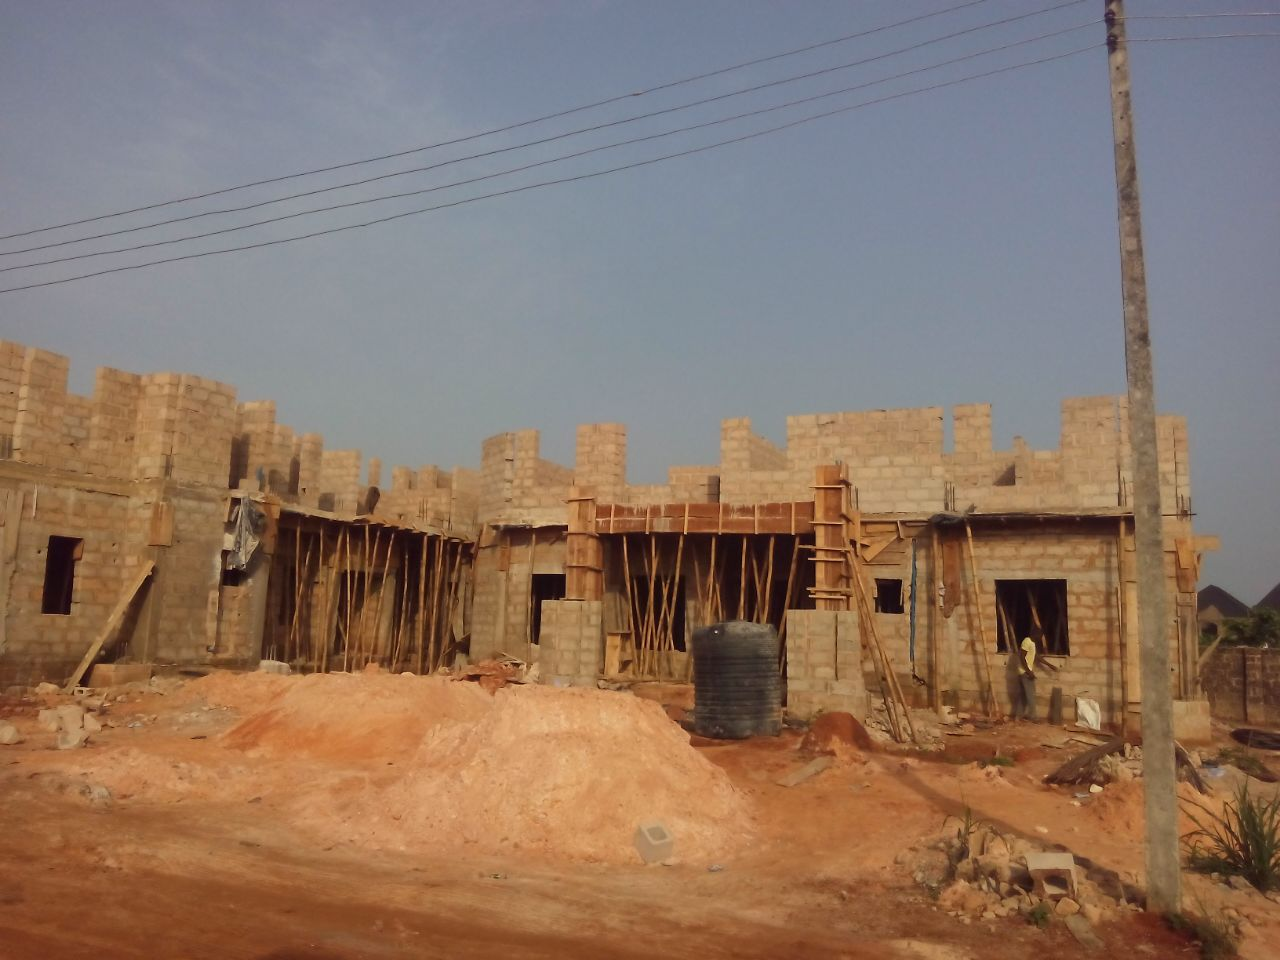 And in benin city the building we are doing here is growing